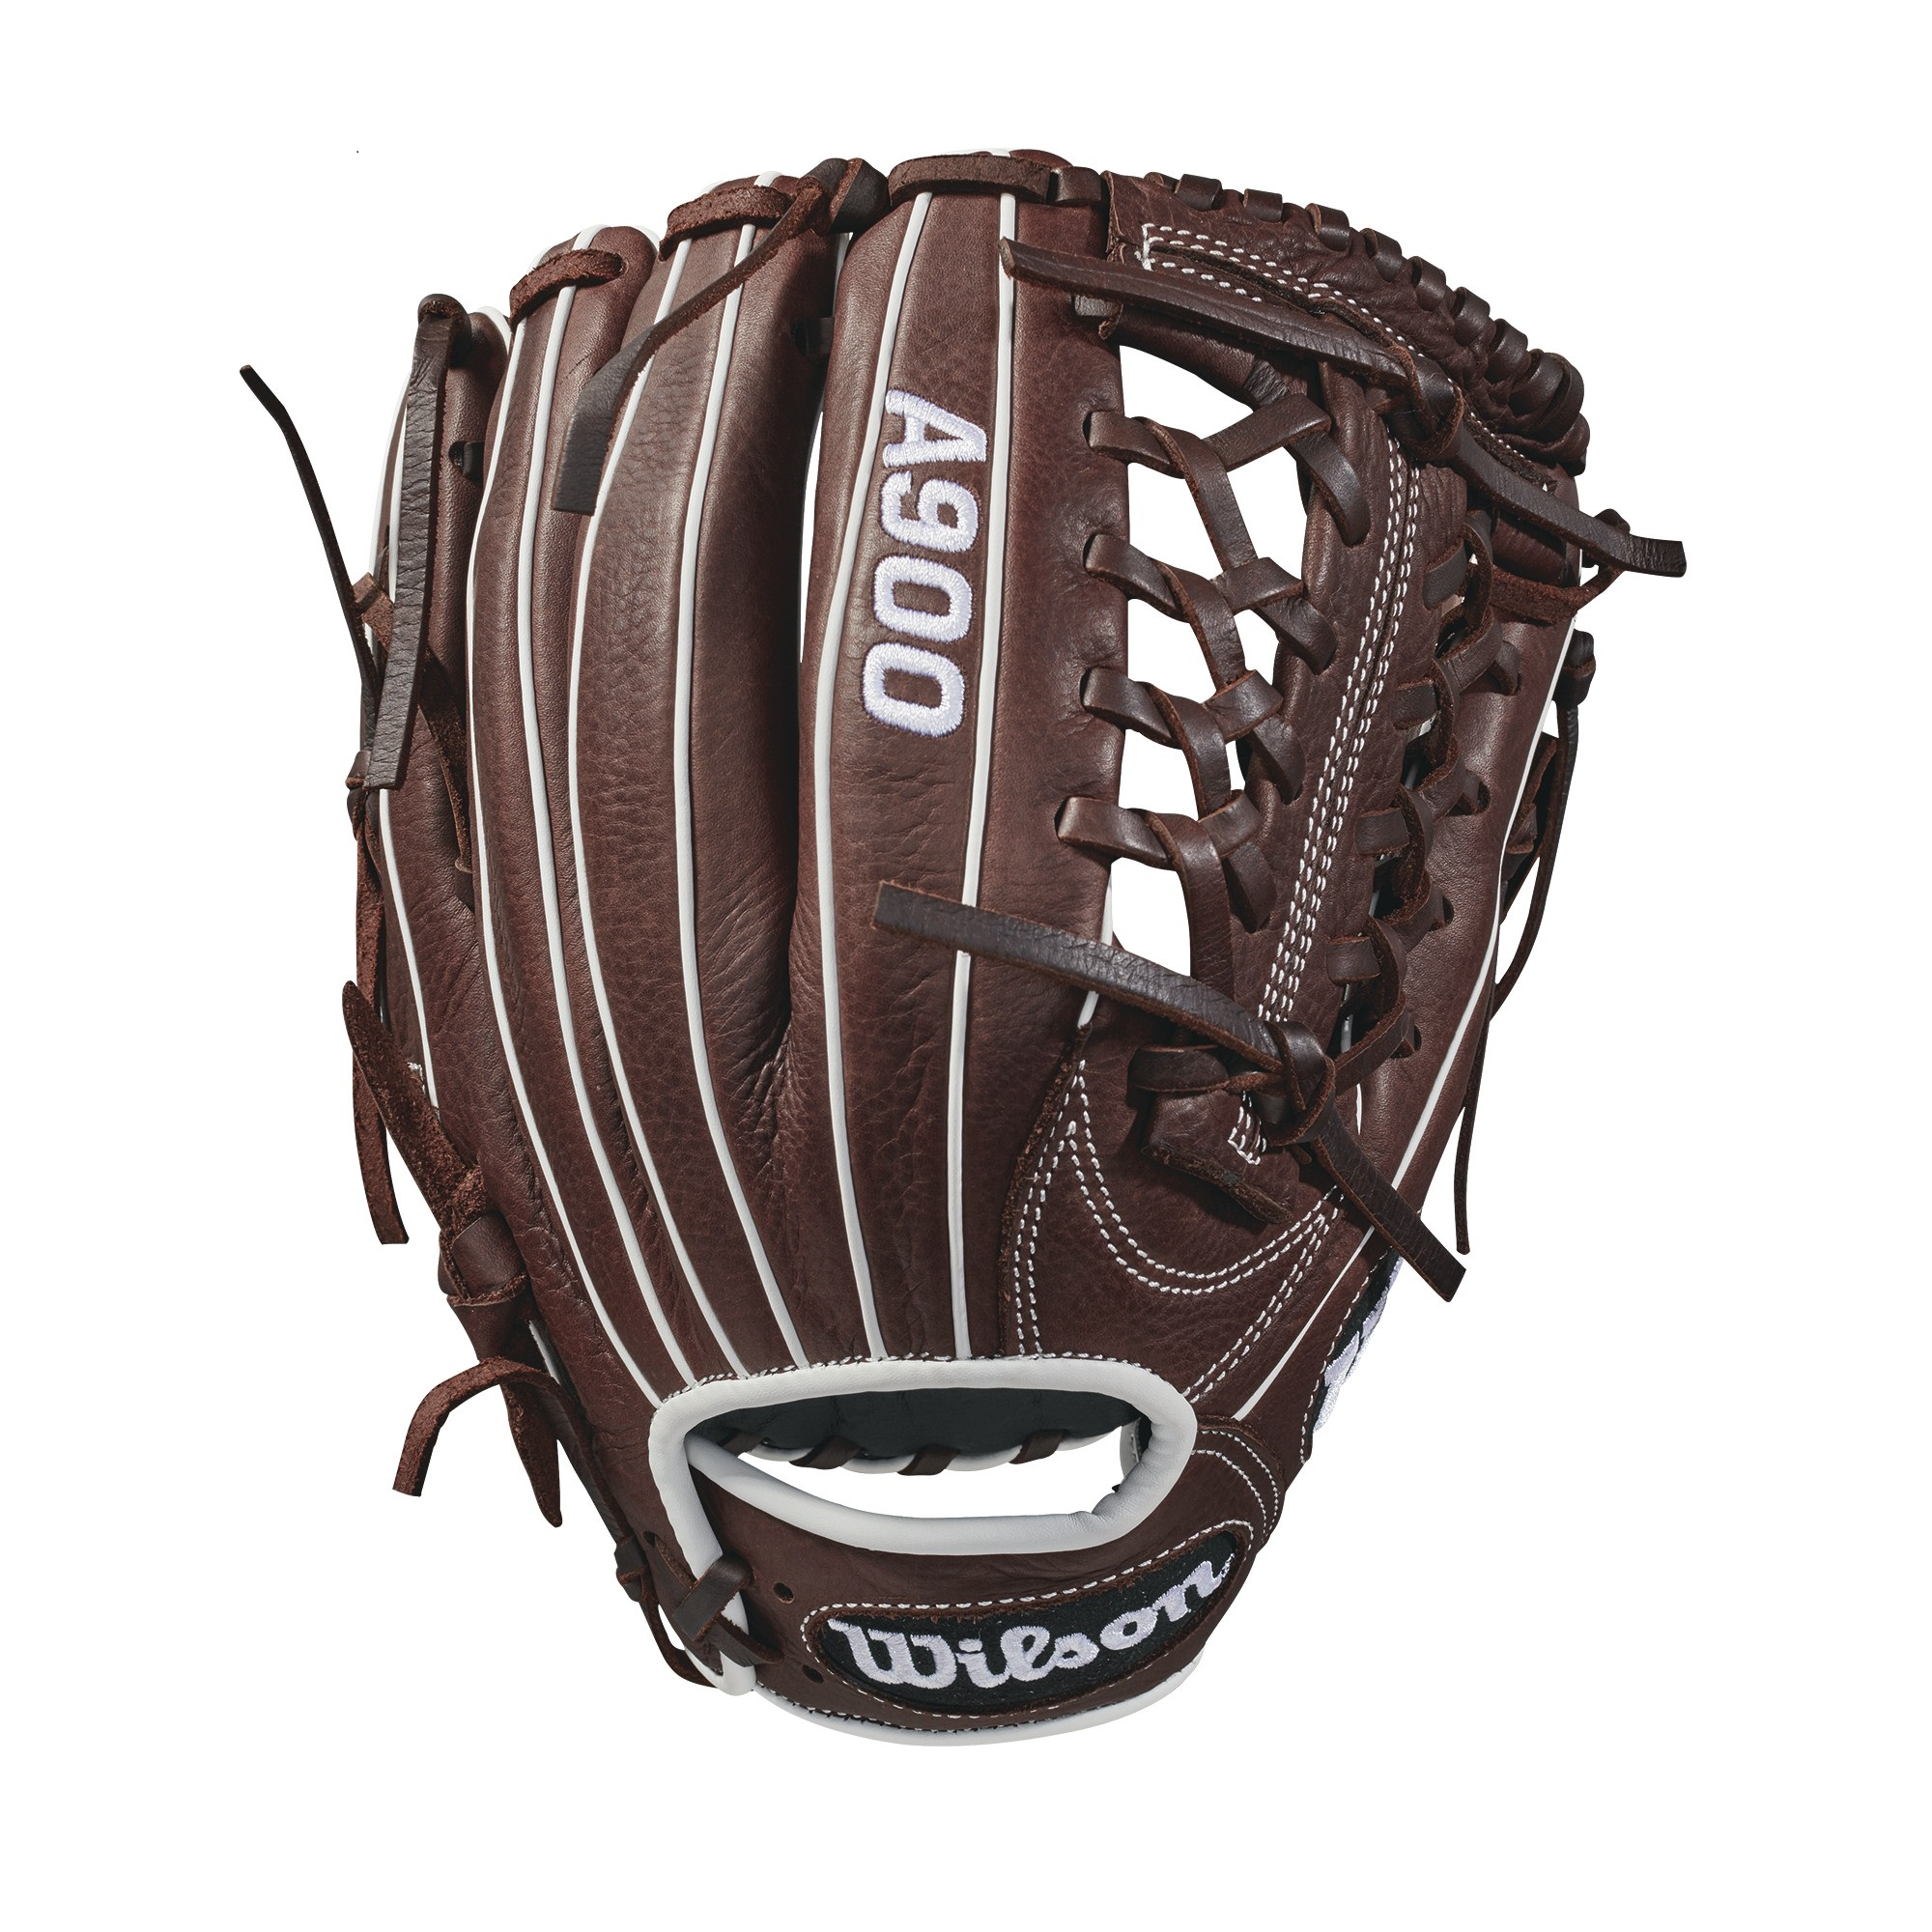 "Wilson 11.75"" A900 Series Baseball Glove, Left Hand Throw by Wilson Sporting Goods"